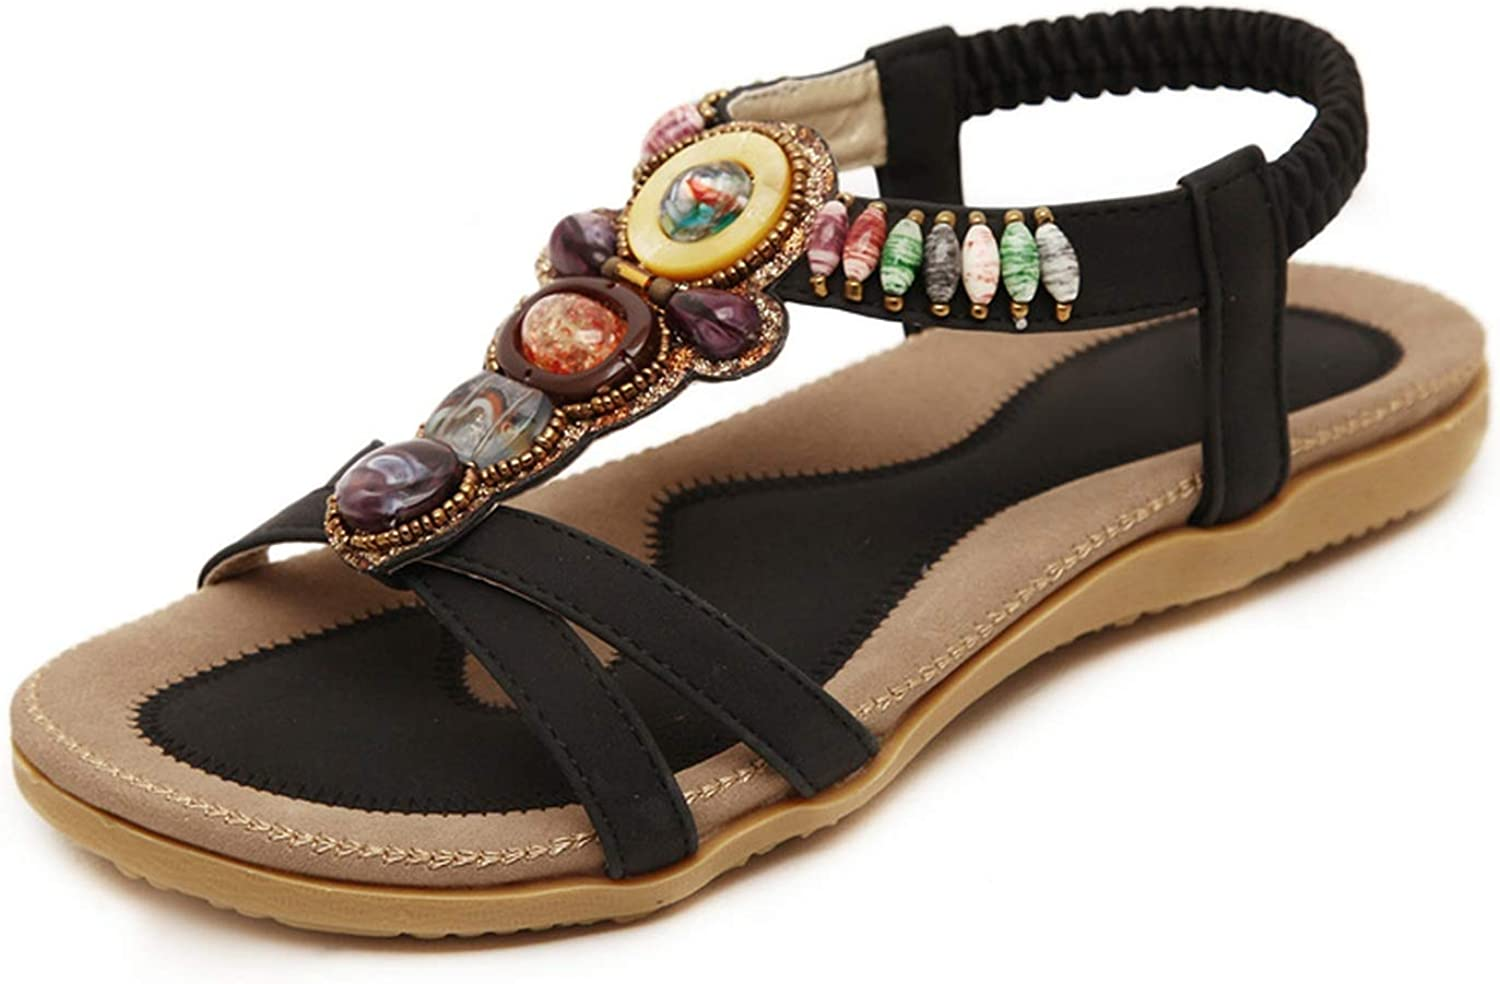 shoes Woman Sandals Bohemia Agate Beads Prom shoes Ethnic Style Summer shoes